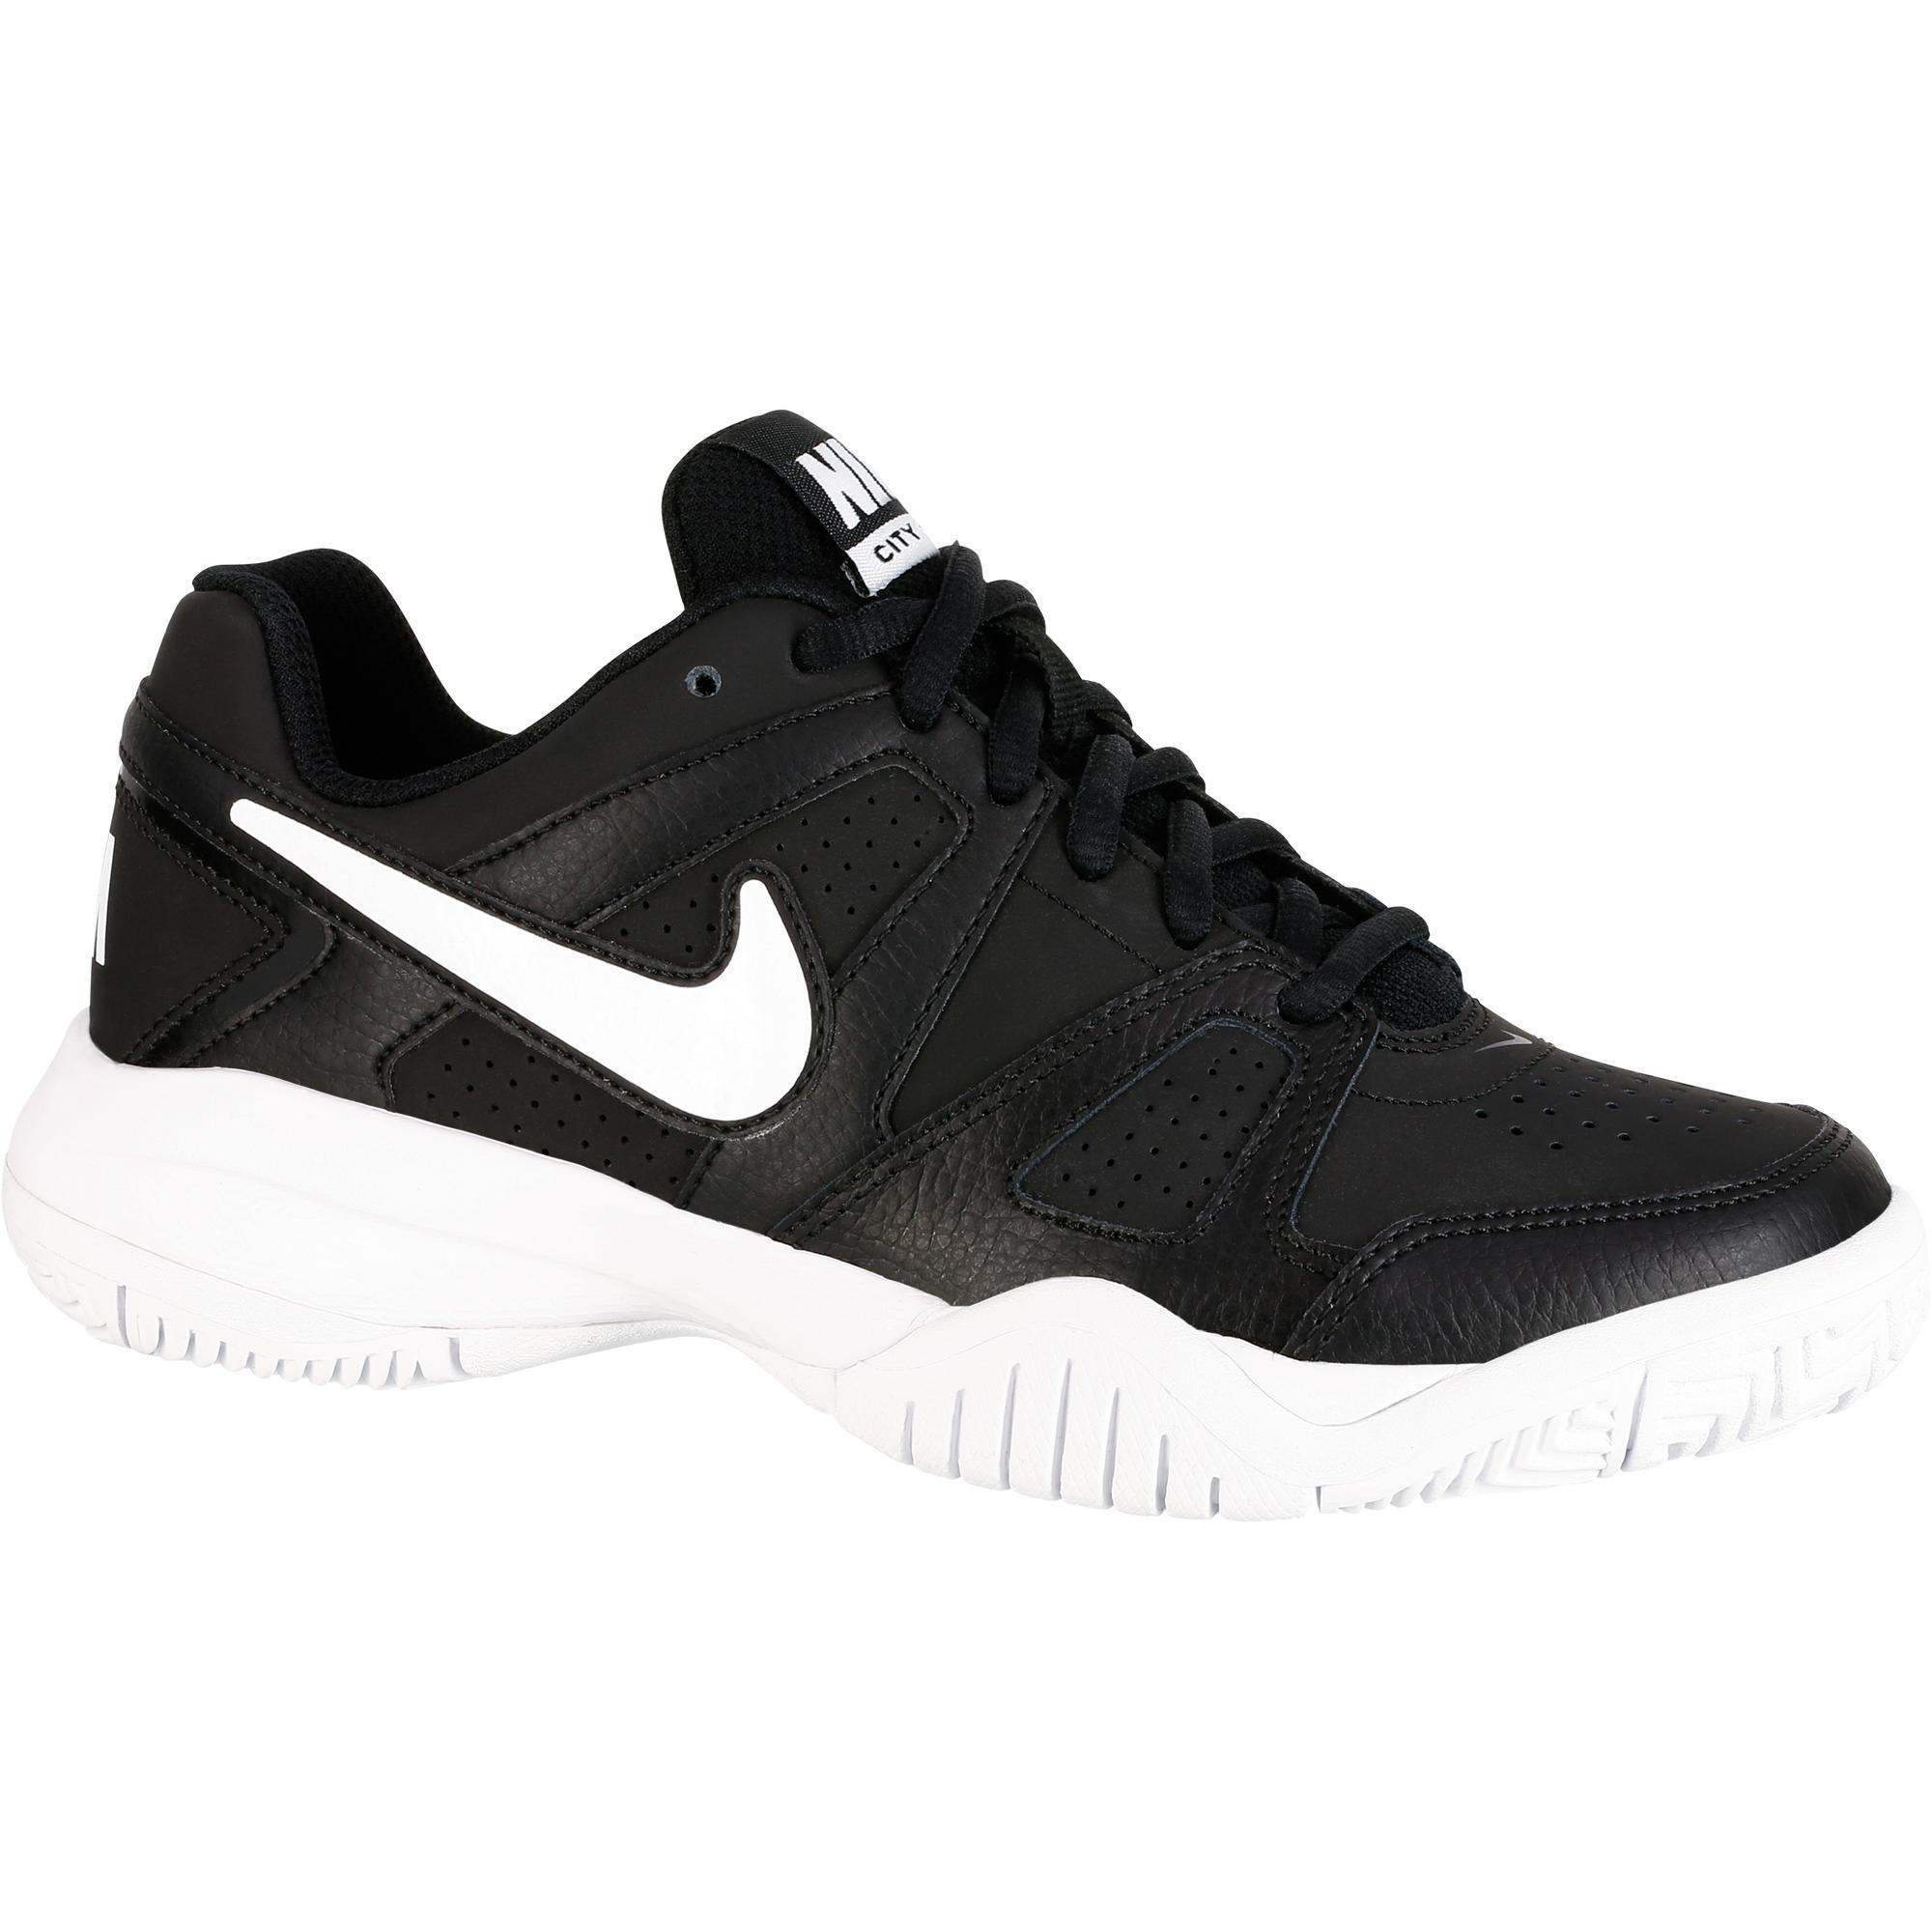 low priced ce7d9 b83a2 Nike artikelen online ← Decathlon.nl